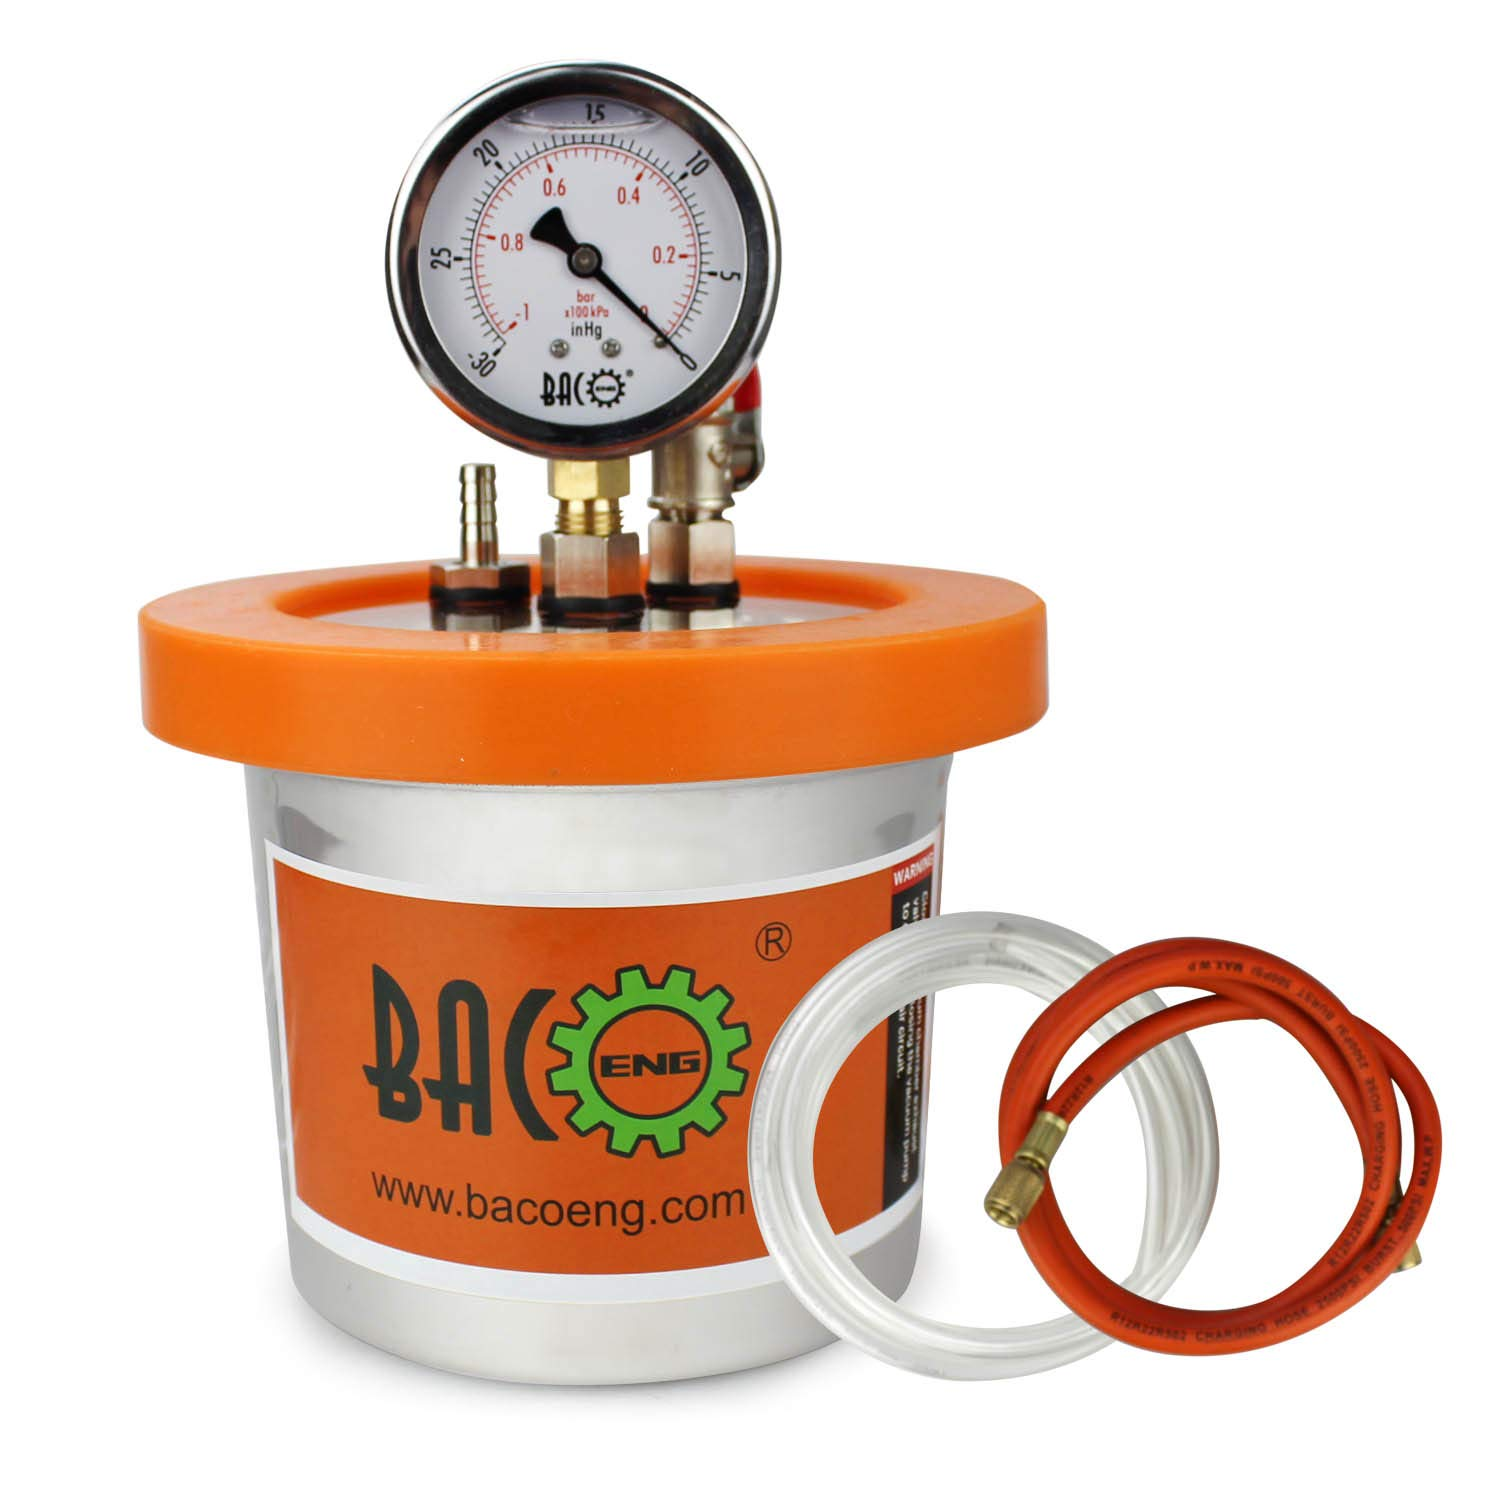 BACOENG 1.2 QT Stainless Steel Resin Trap Vacuum Degassing Chamber (3 Gallon/1.2 QT/2 QT Available) ... by BACOENG